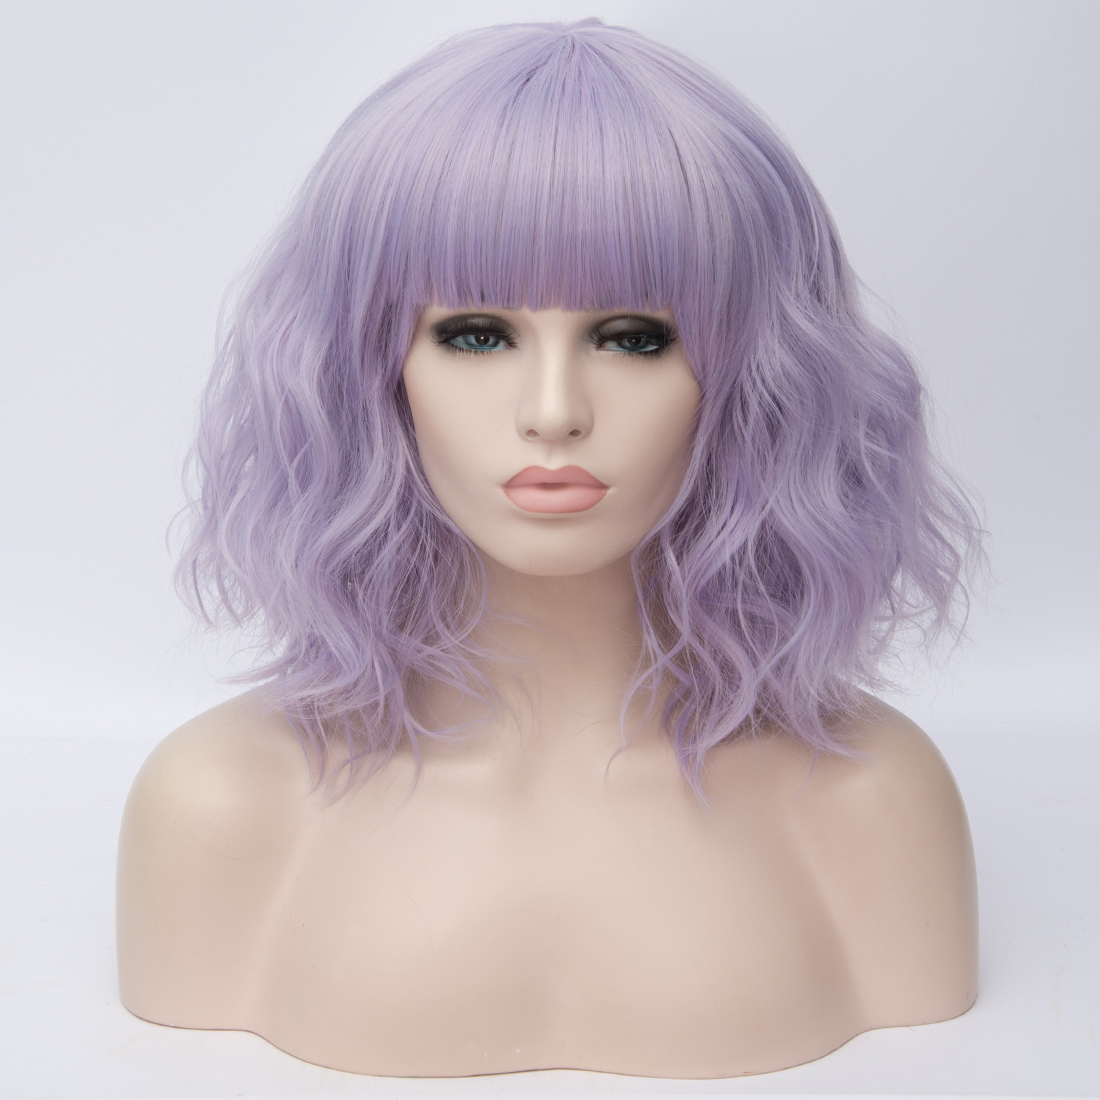 Hec15e7ee16654b9b9239f658eaacec09T - Similler Short Synthetic Wig for Women Cosplay Curly Hair Heat Resistance Ombre Color Blue Purple Pink Green Orange Two Tones